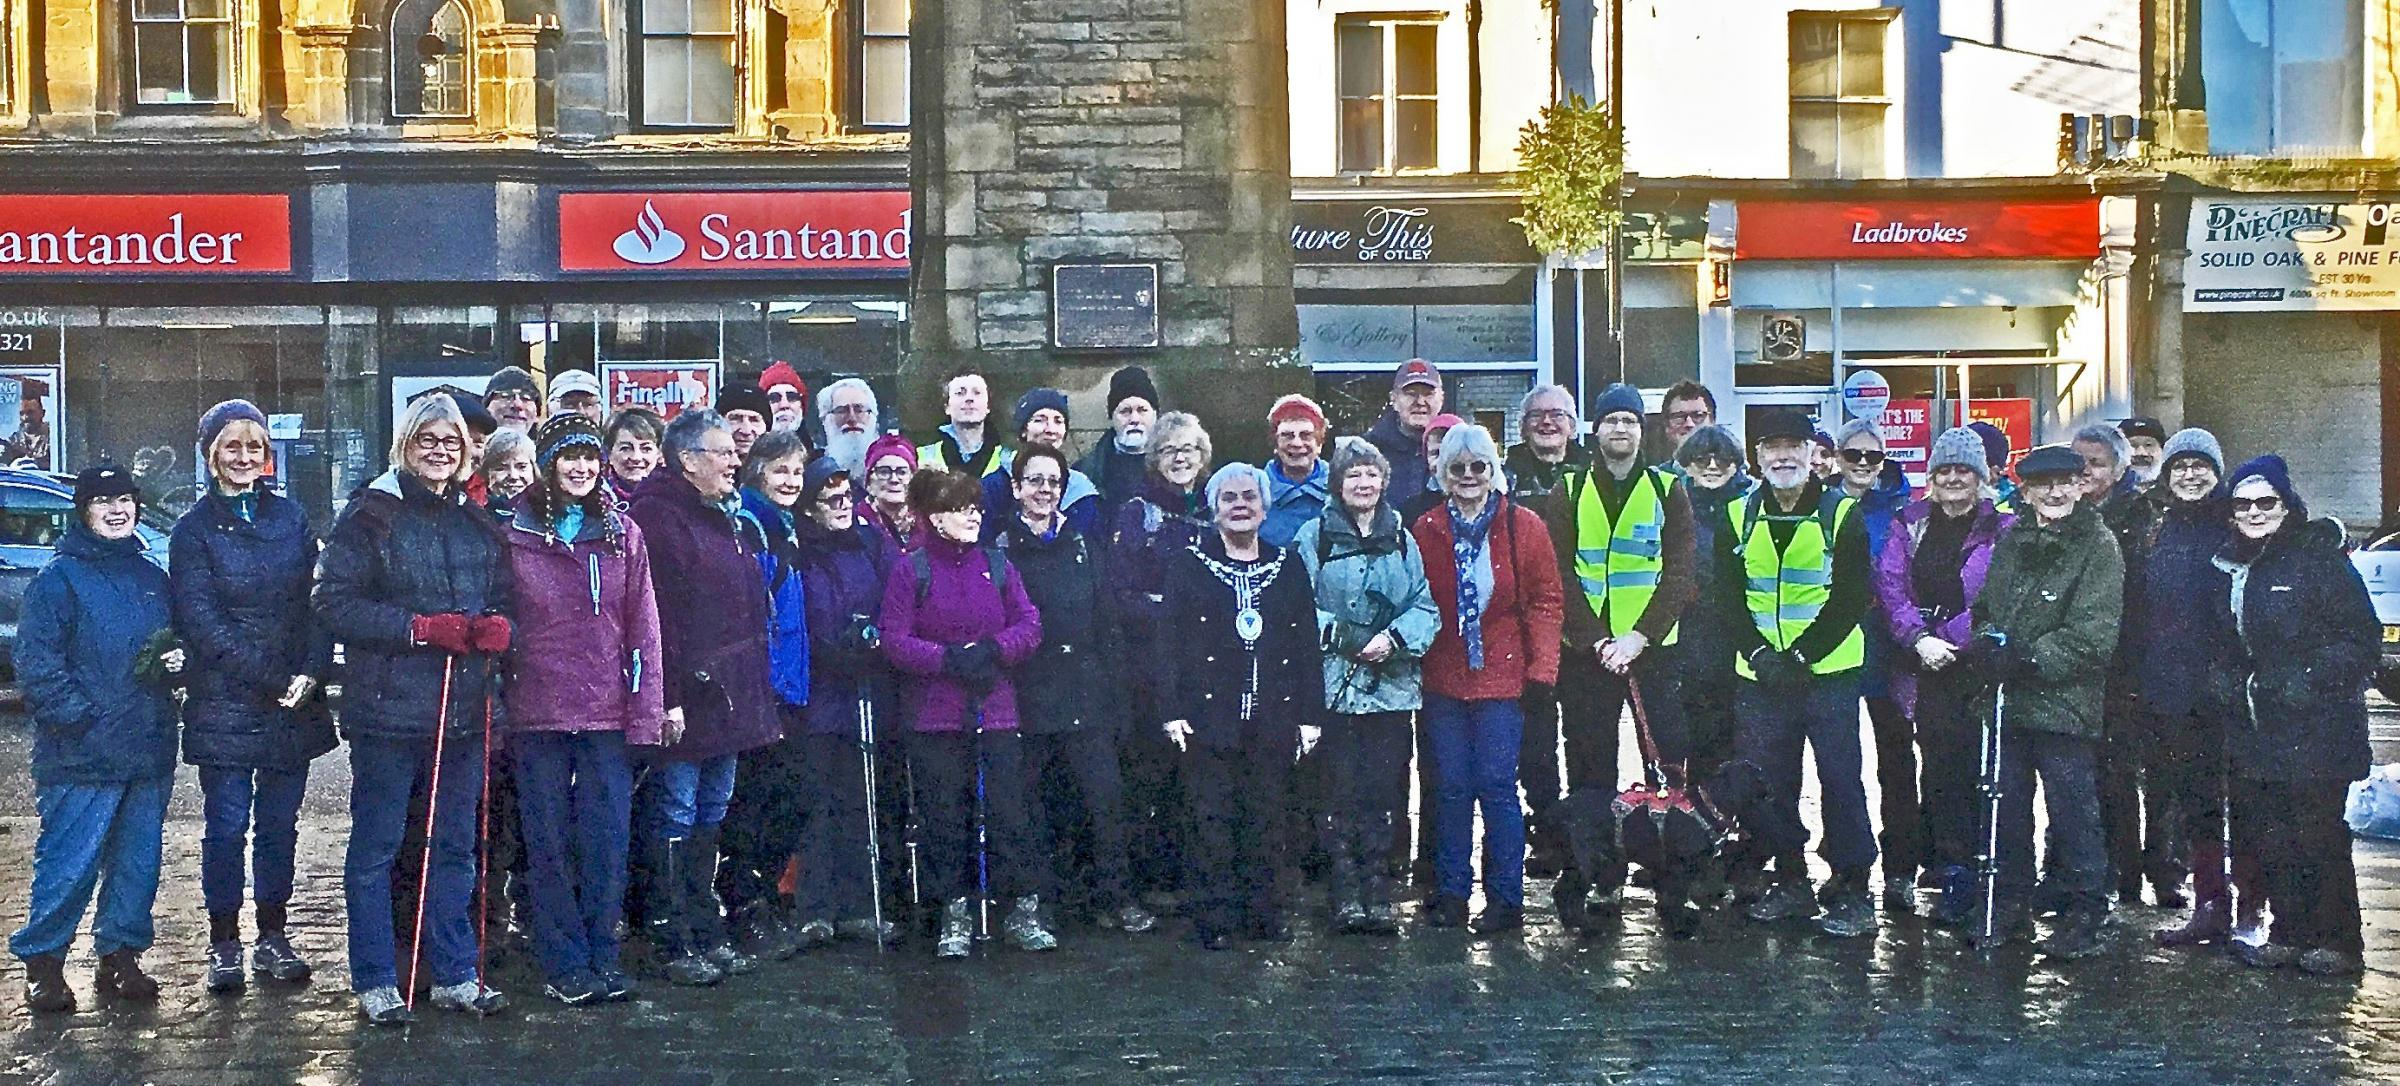 Walkers turned out in force at Otley to support domestic abuse charity Behind Closed Doors